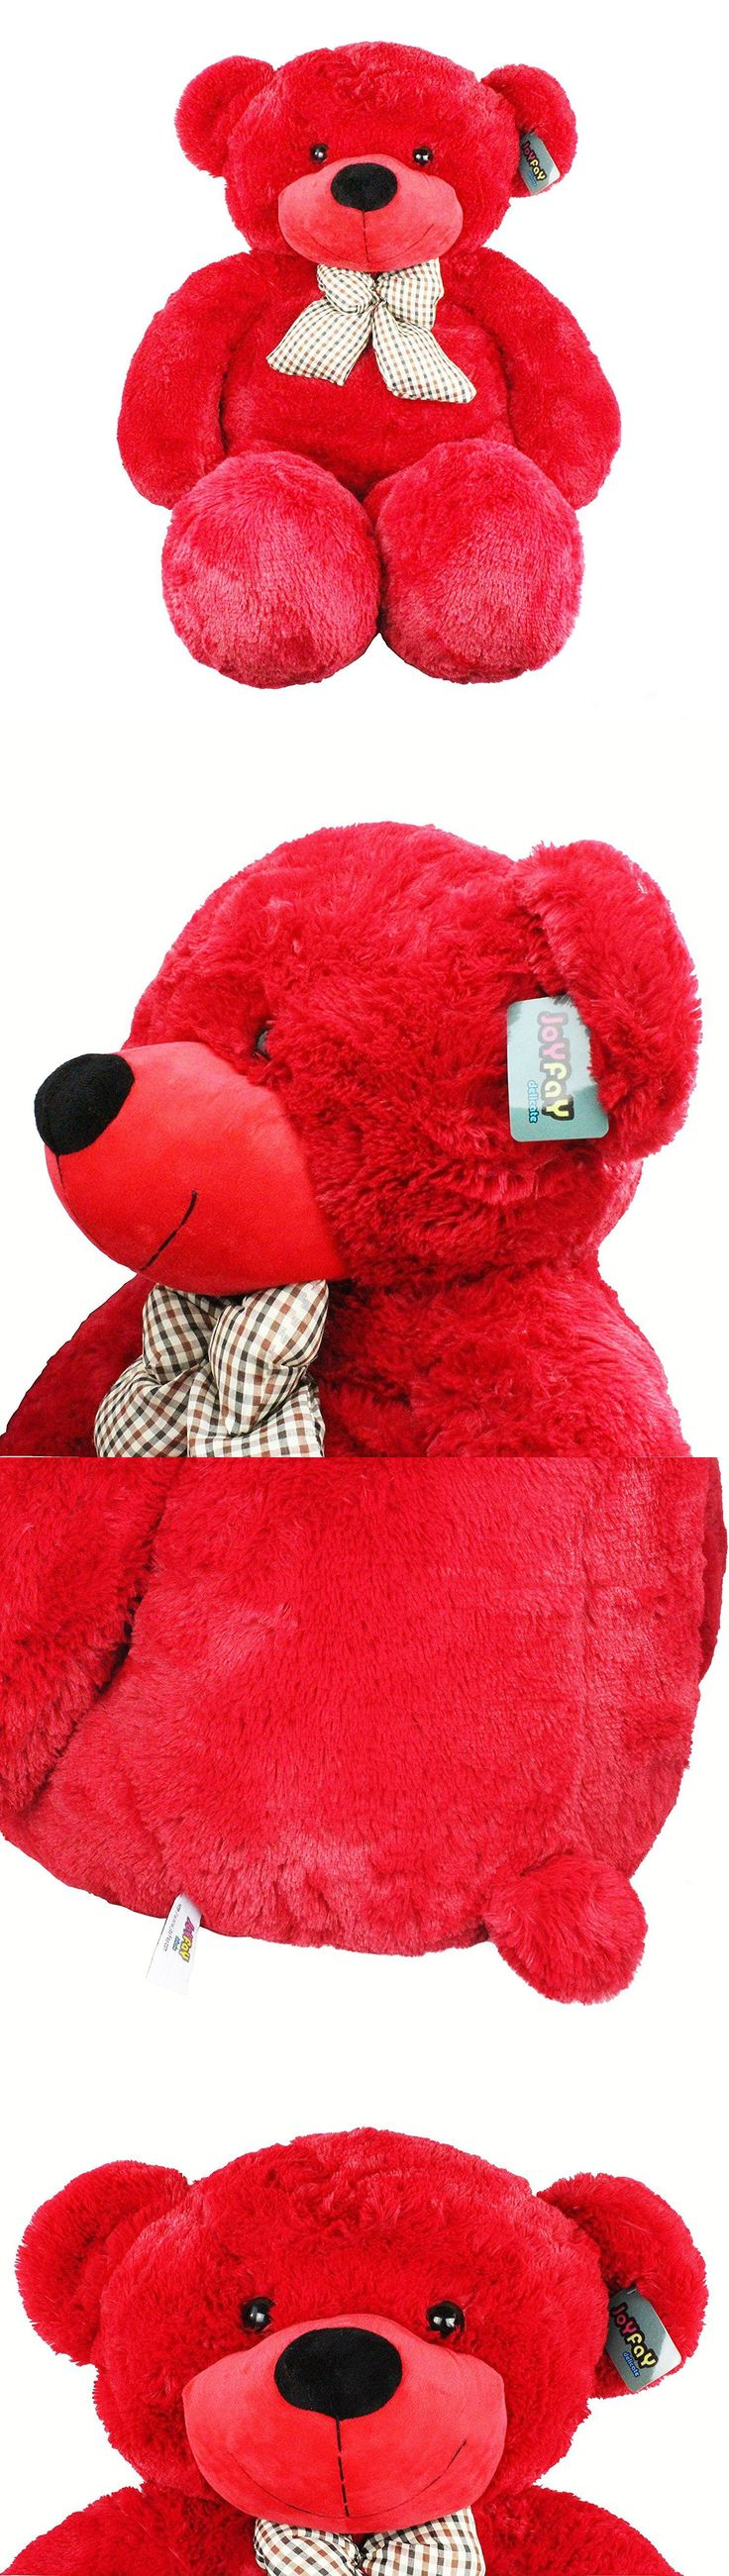 Other Stuffed Animals 230: Joyfay® Red Giant Teddy Bear 47 120Cm Stuffed Toy Birthday Gift -> BUY IT NOW ONLY: $62.29 on eBay!